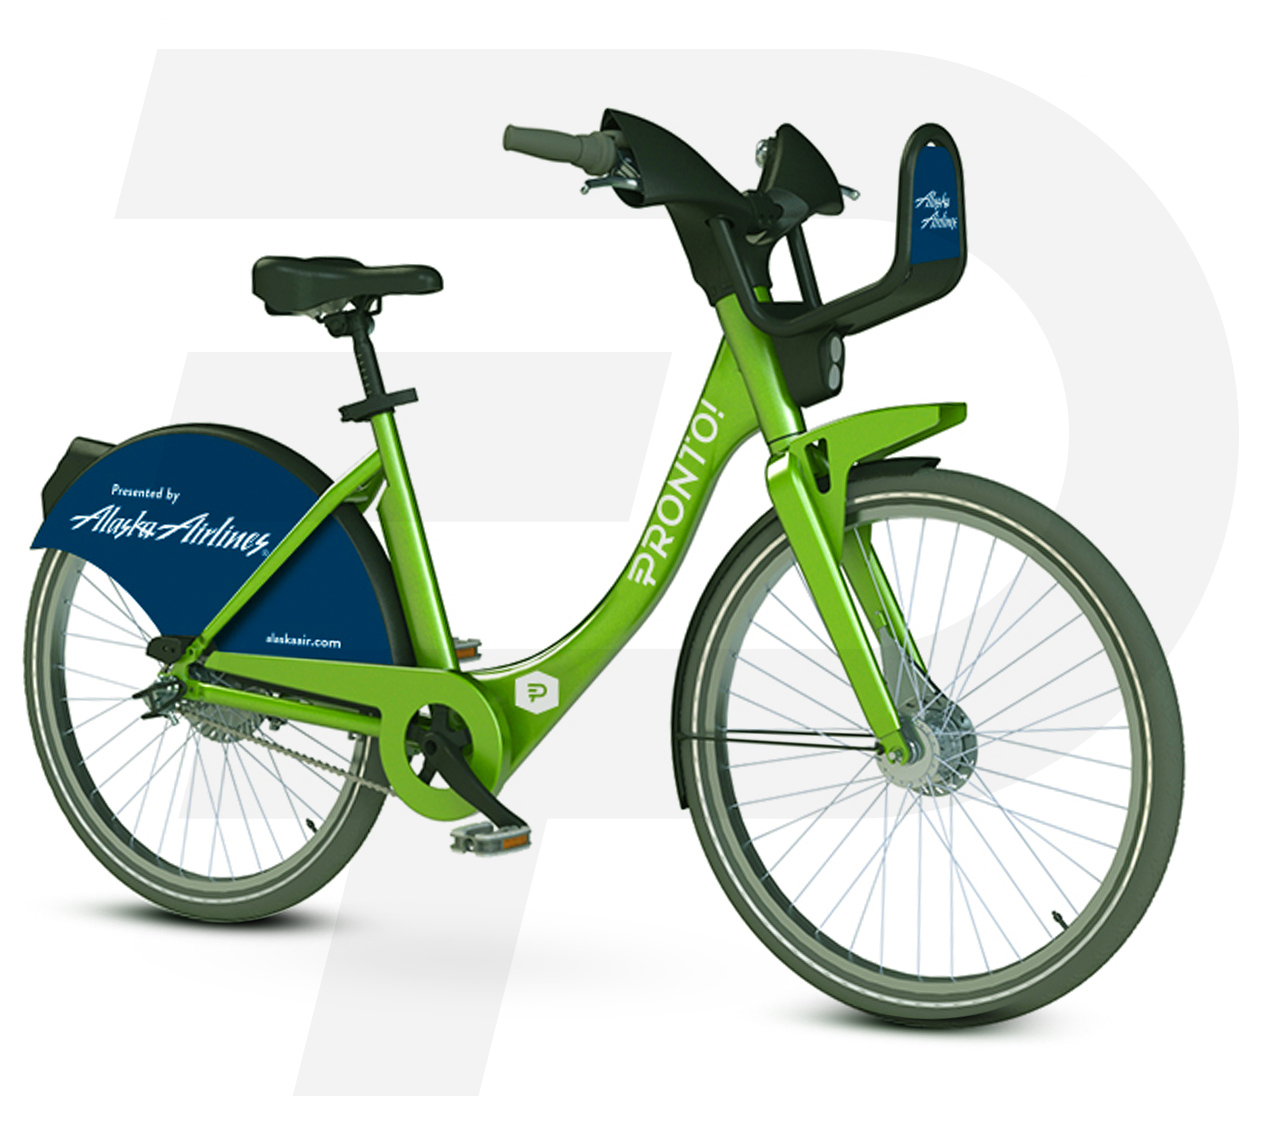 New name for Seattle bike share program: Pronto! Cycle ...